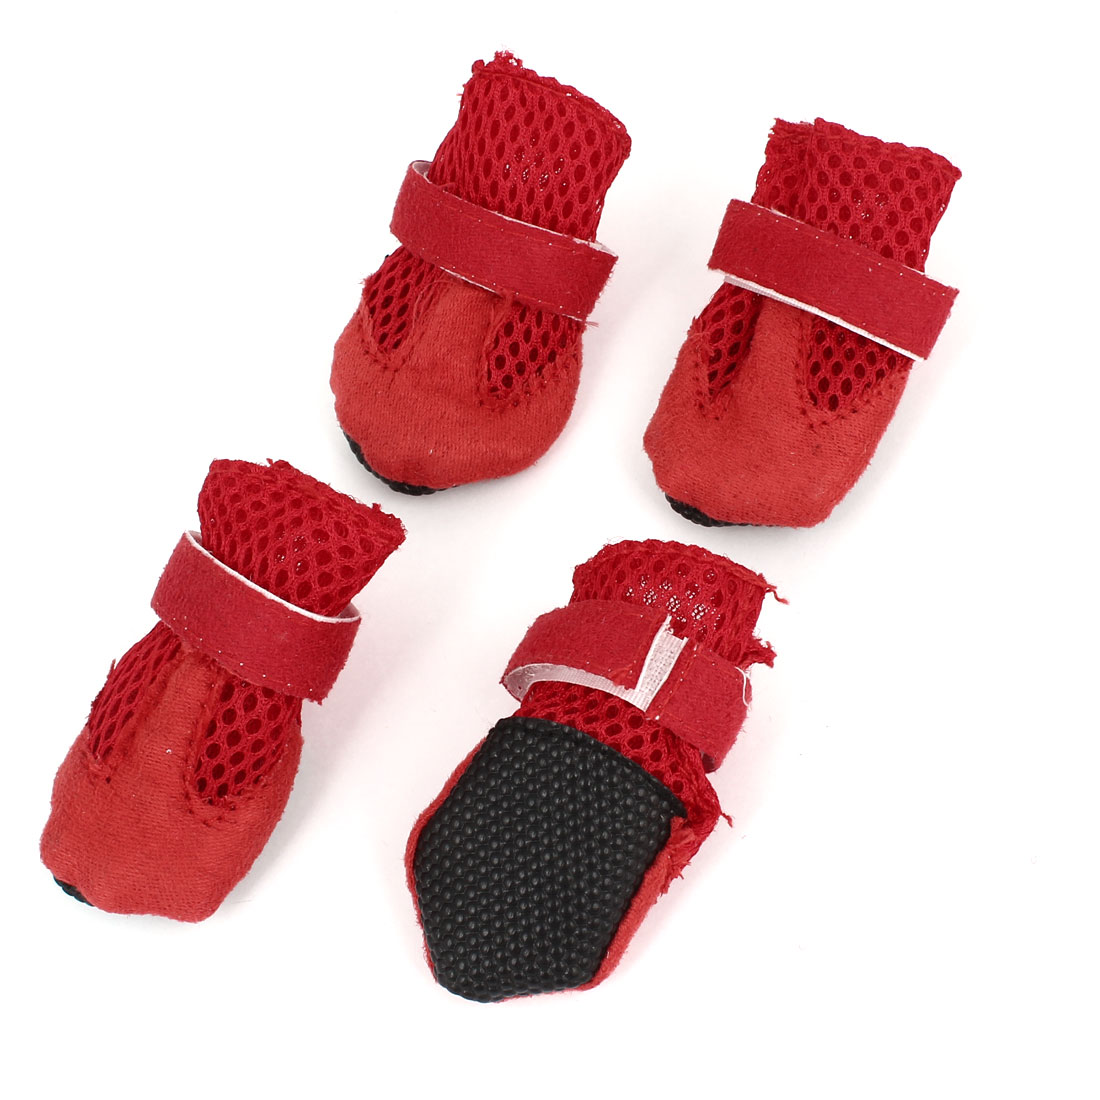 2 Pair Hook Loop Closure Pet Dog Mesh Shoes Boots Booties Red Size XS